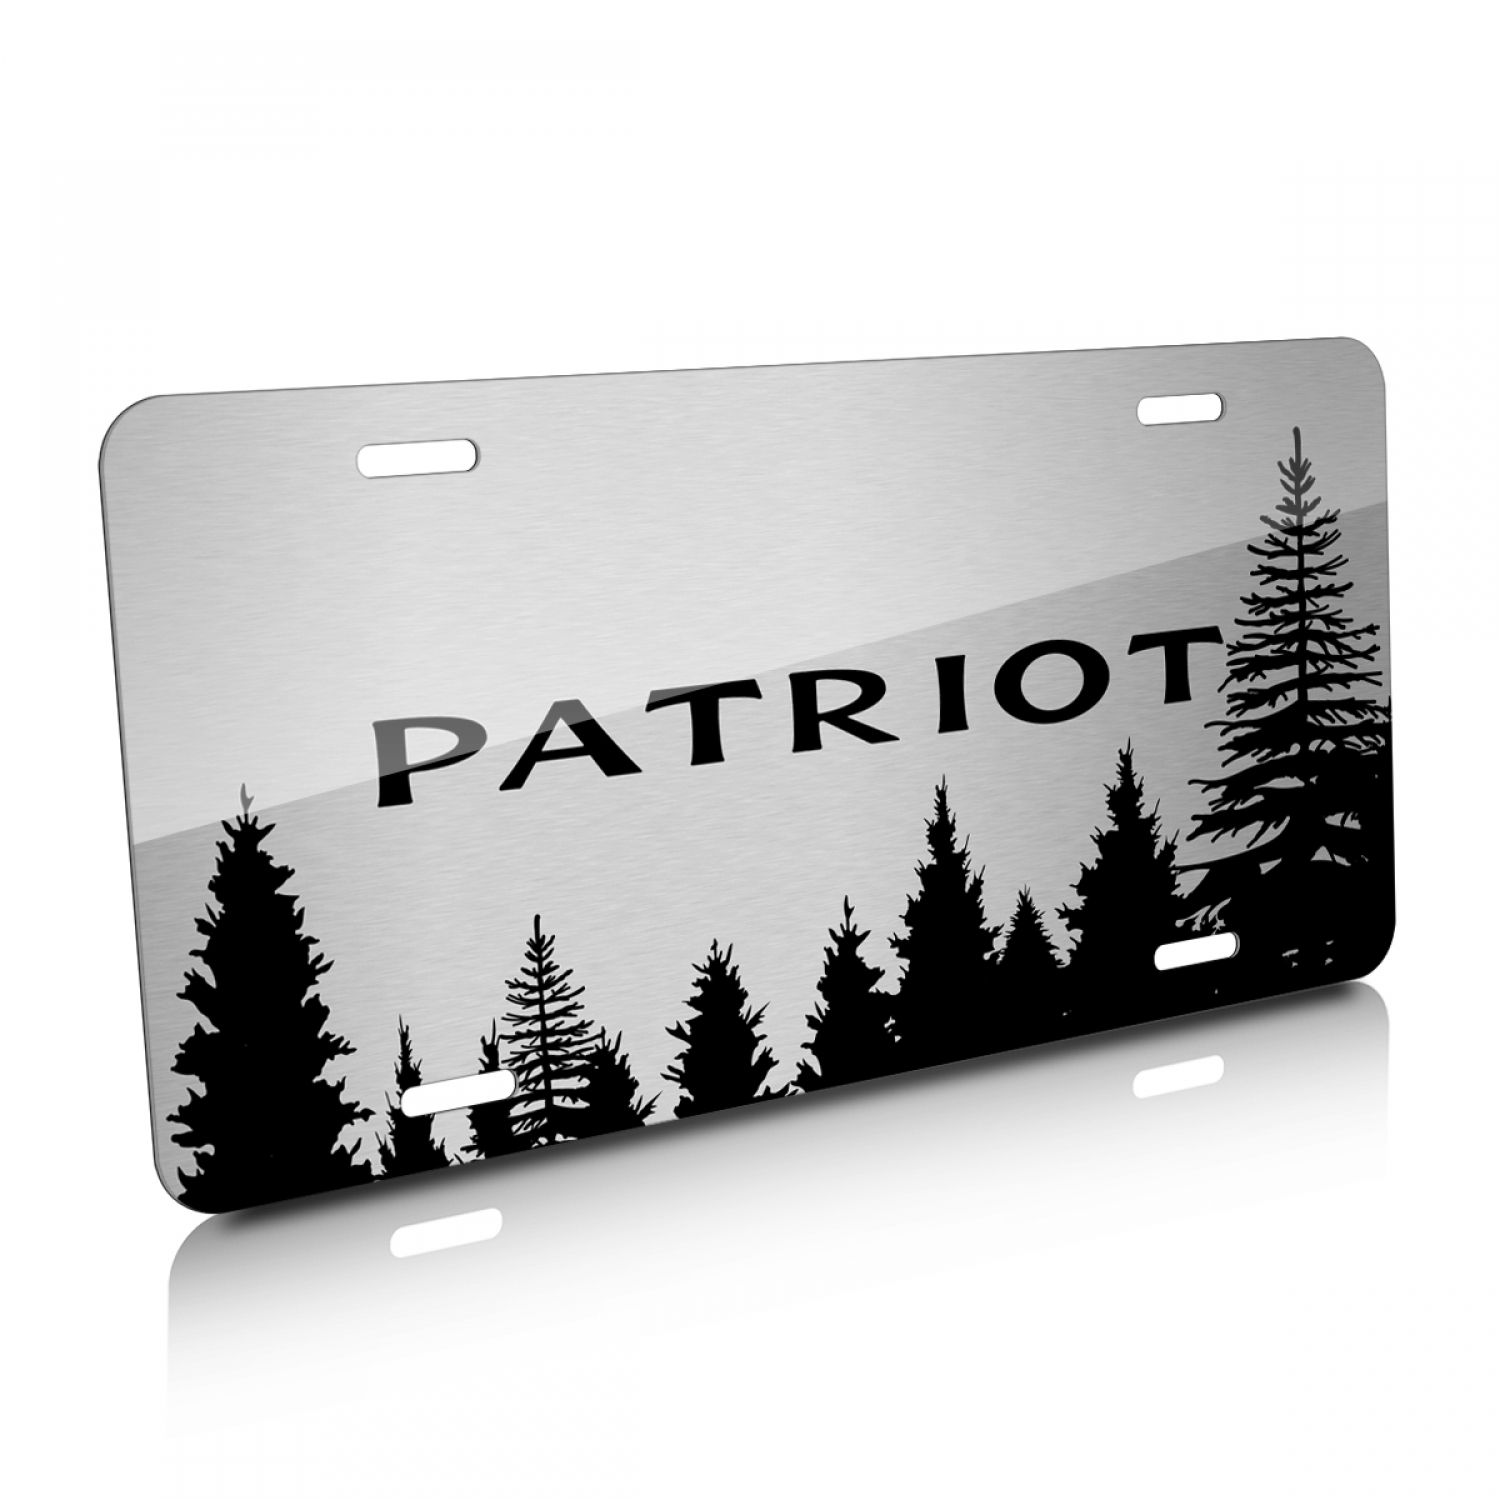 Jeep Patriot Forrest Sillhouette Graphic Brush Aluminum License Plate